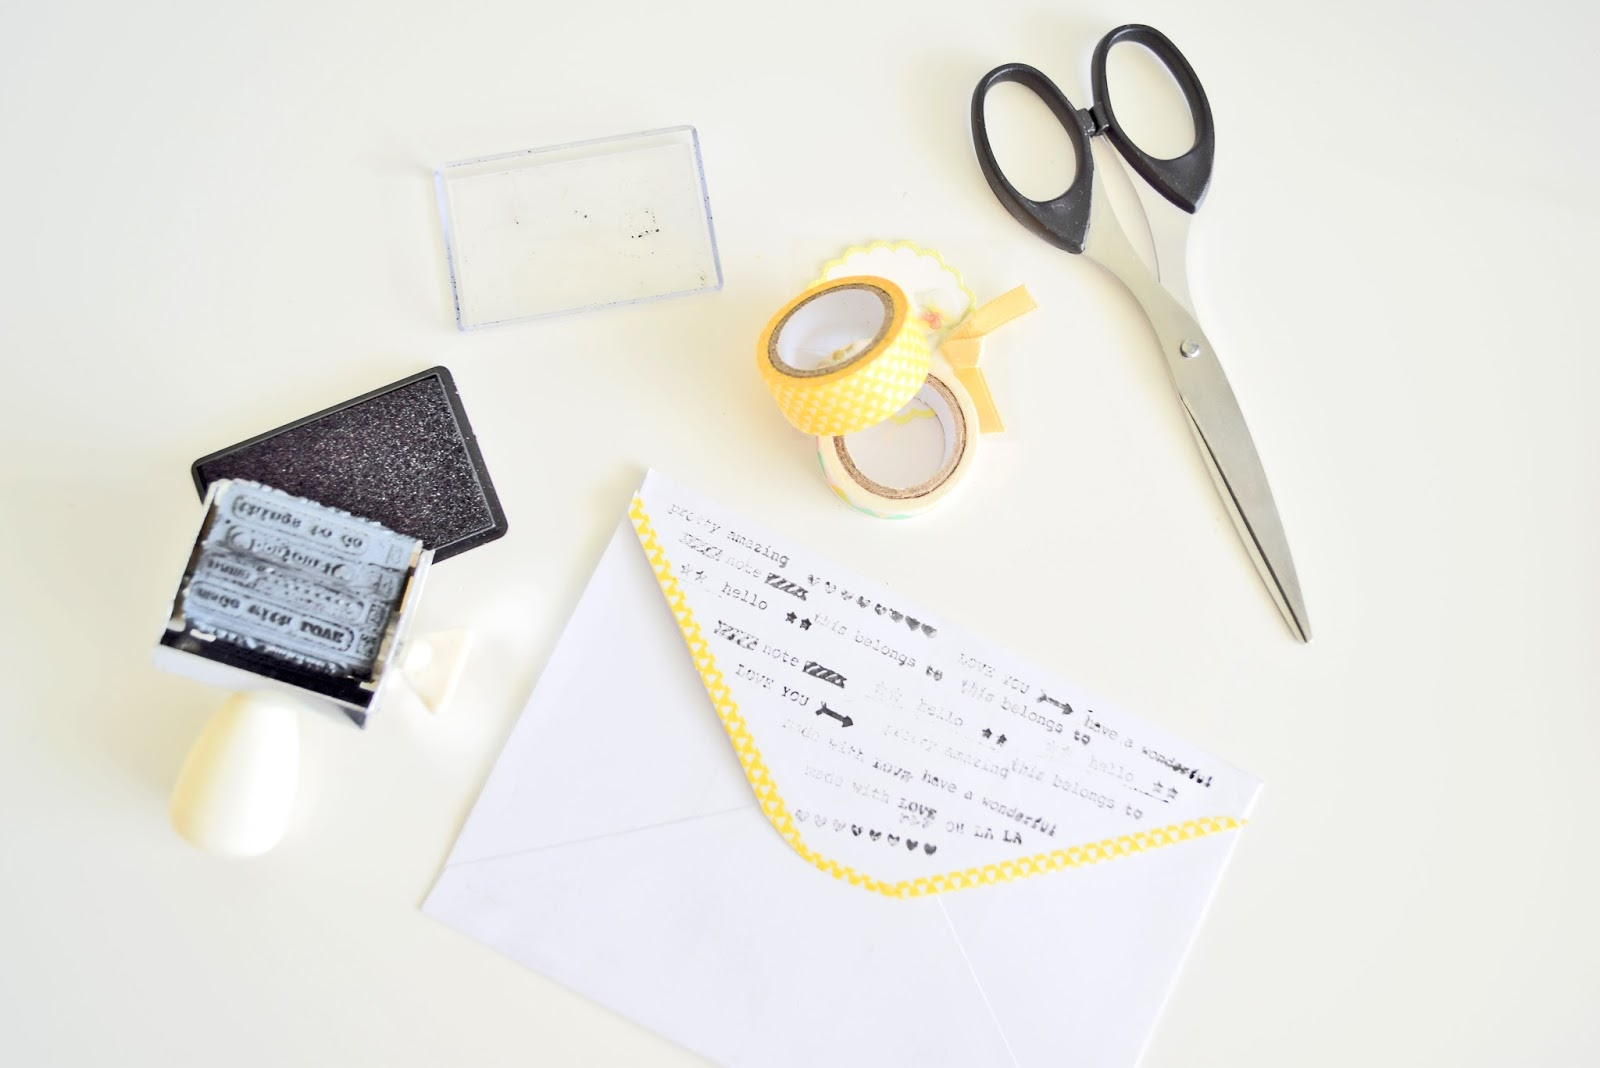 How to quickly decorate an envelope?